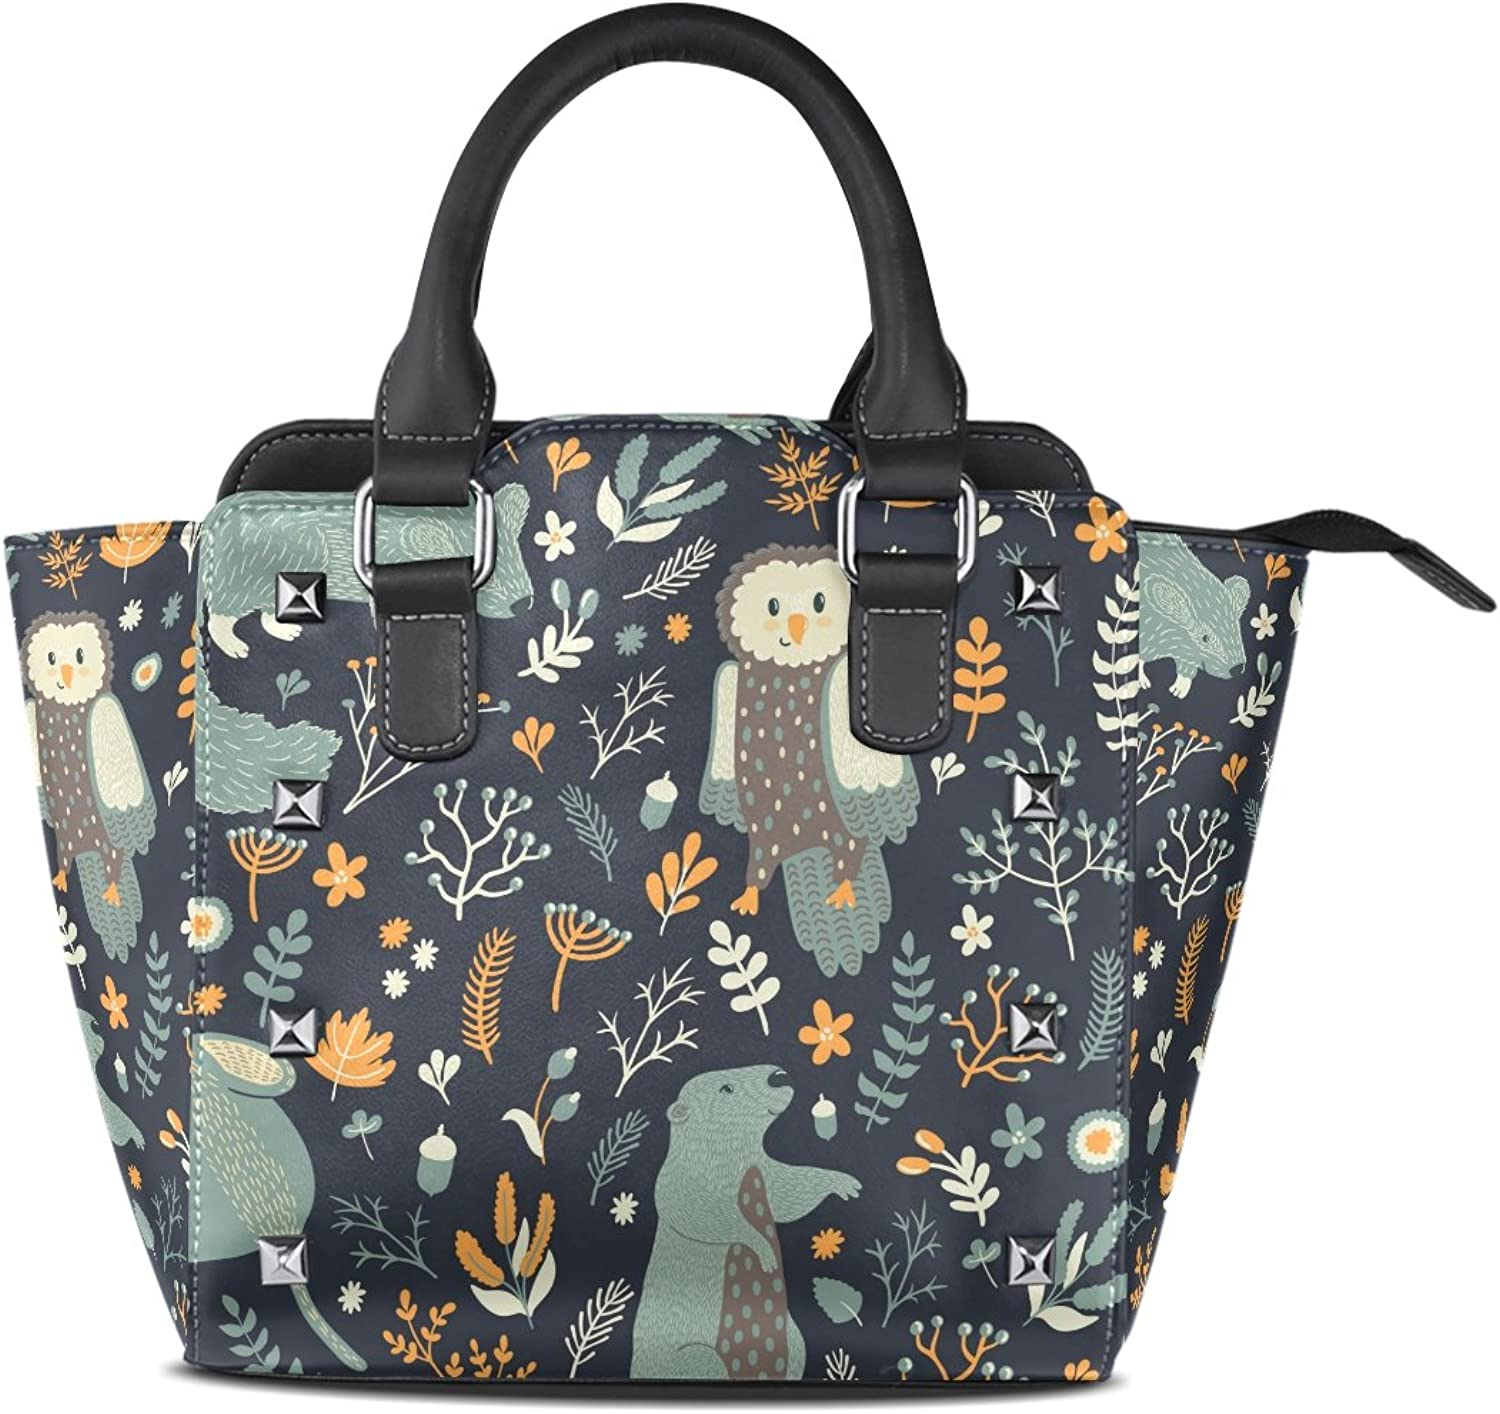 My Little Nest Women's Top Handle Satchel Handbag Forest Cute Animals Leaves Flowers Ladies PU Leather Shoulder Bag Crossbody Bag